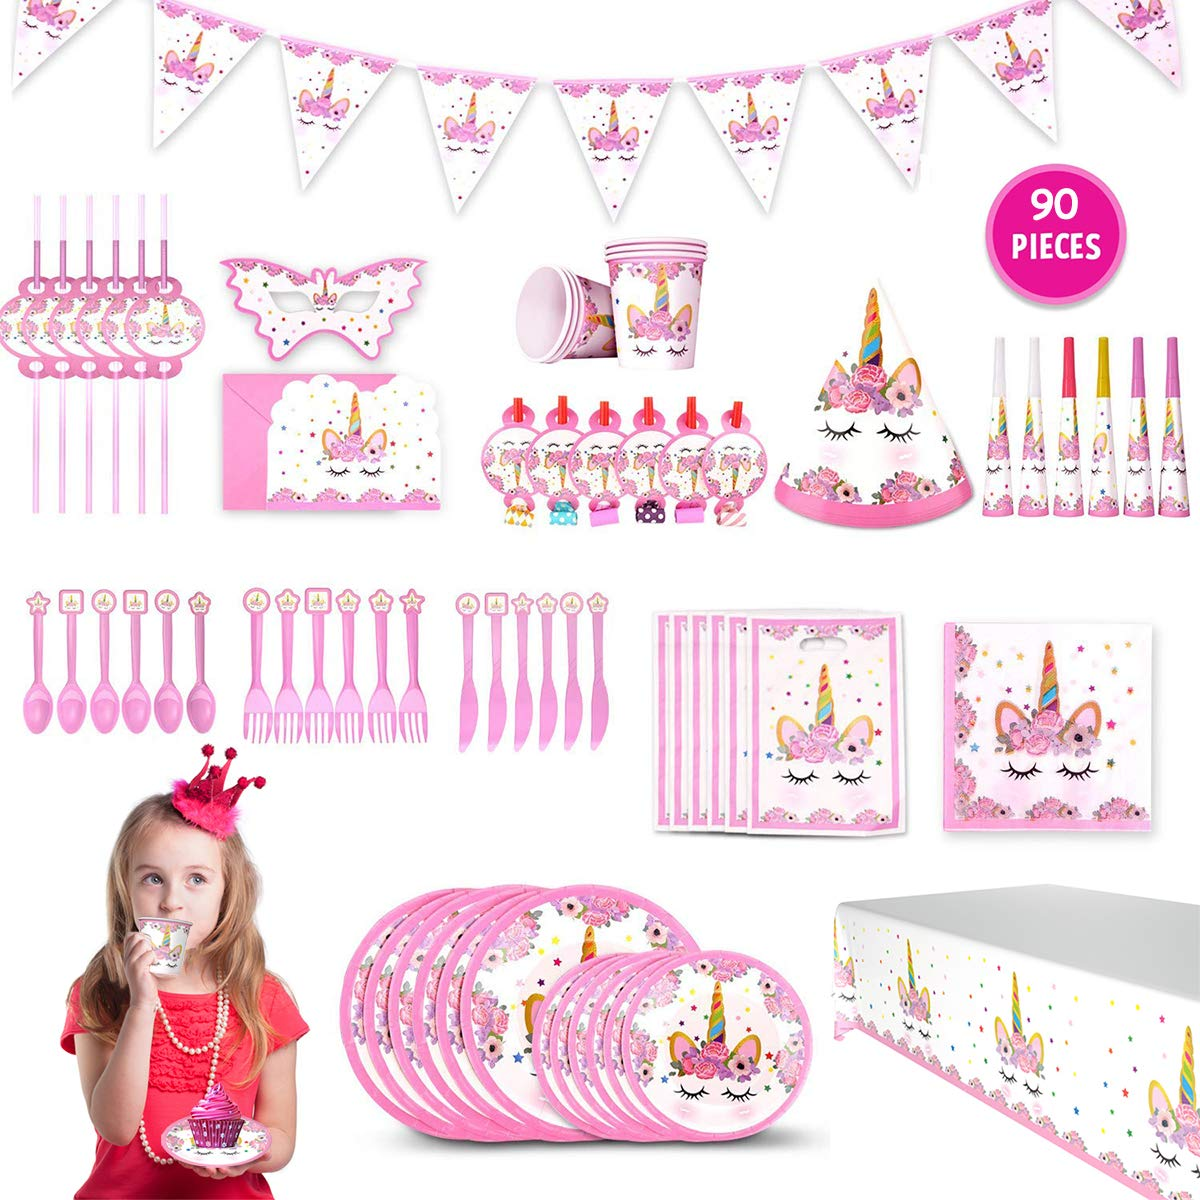 Gifts For 3 12 Year Old Girls JoyJam Unicorn Party Supplies 16 Varieties Birthday Decorations Favors Tableware Pink Plates